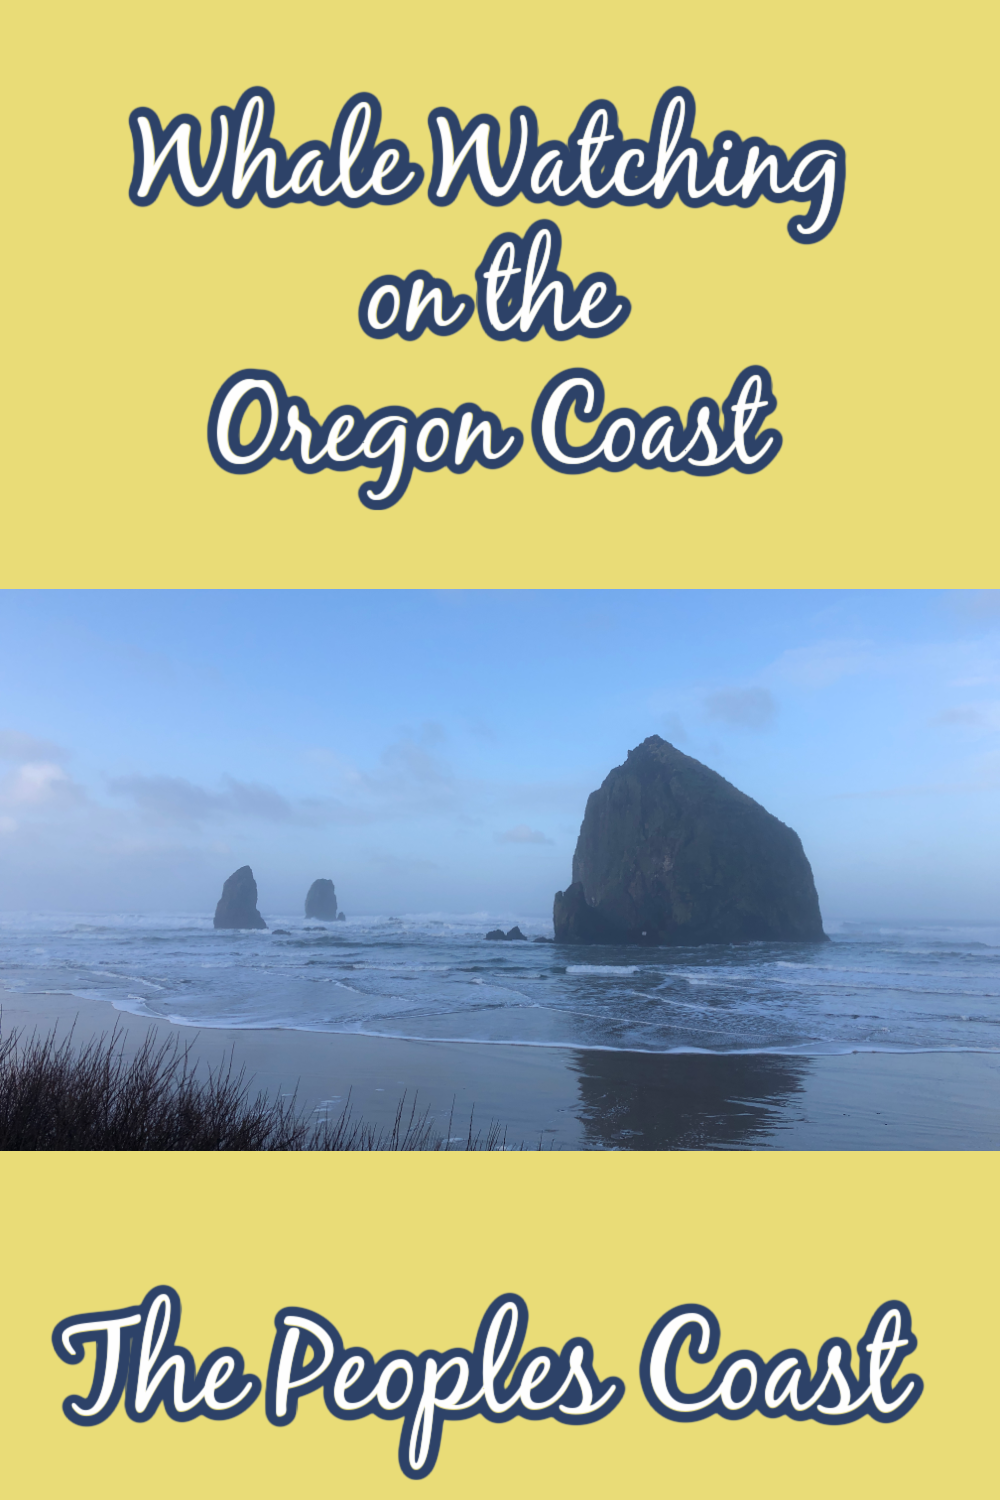 Spring Whale Watching on the Oregon Coast